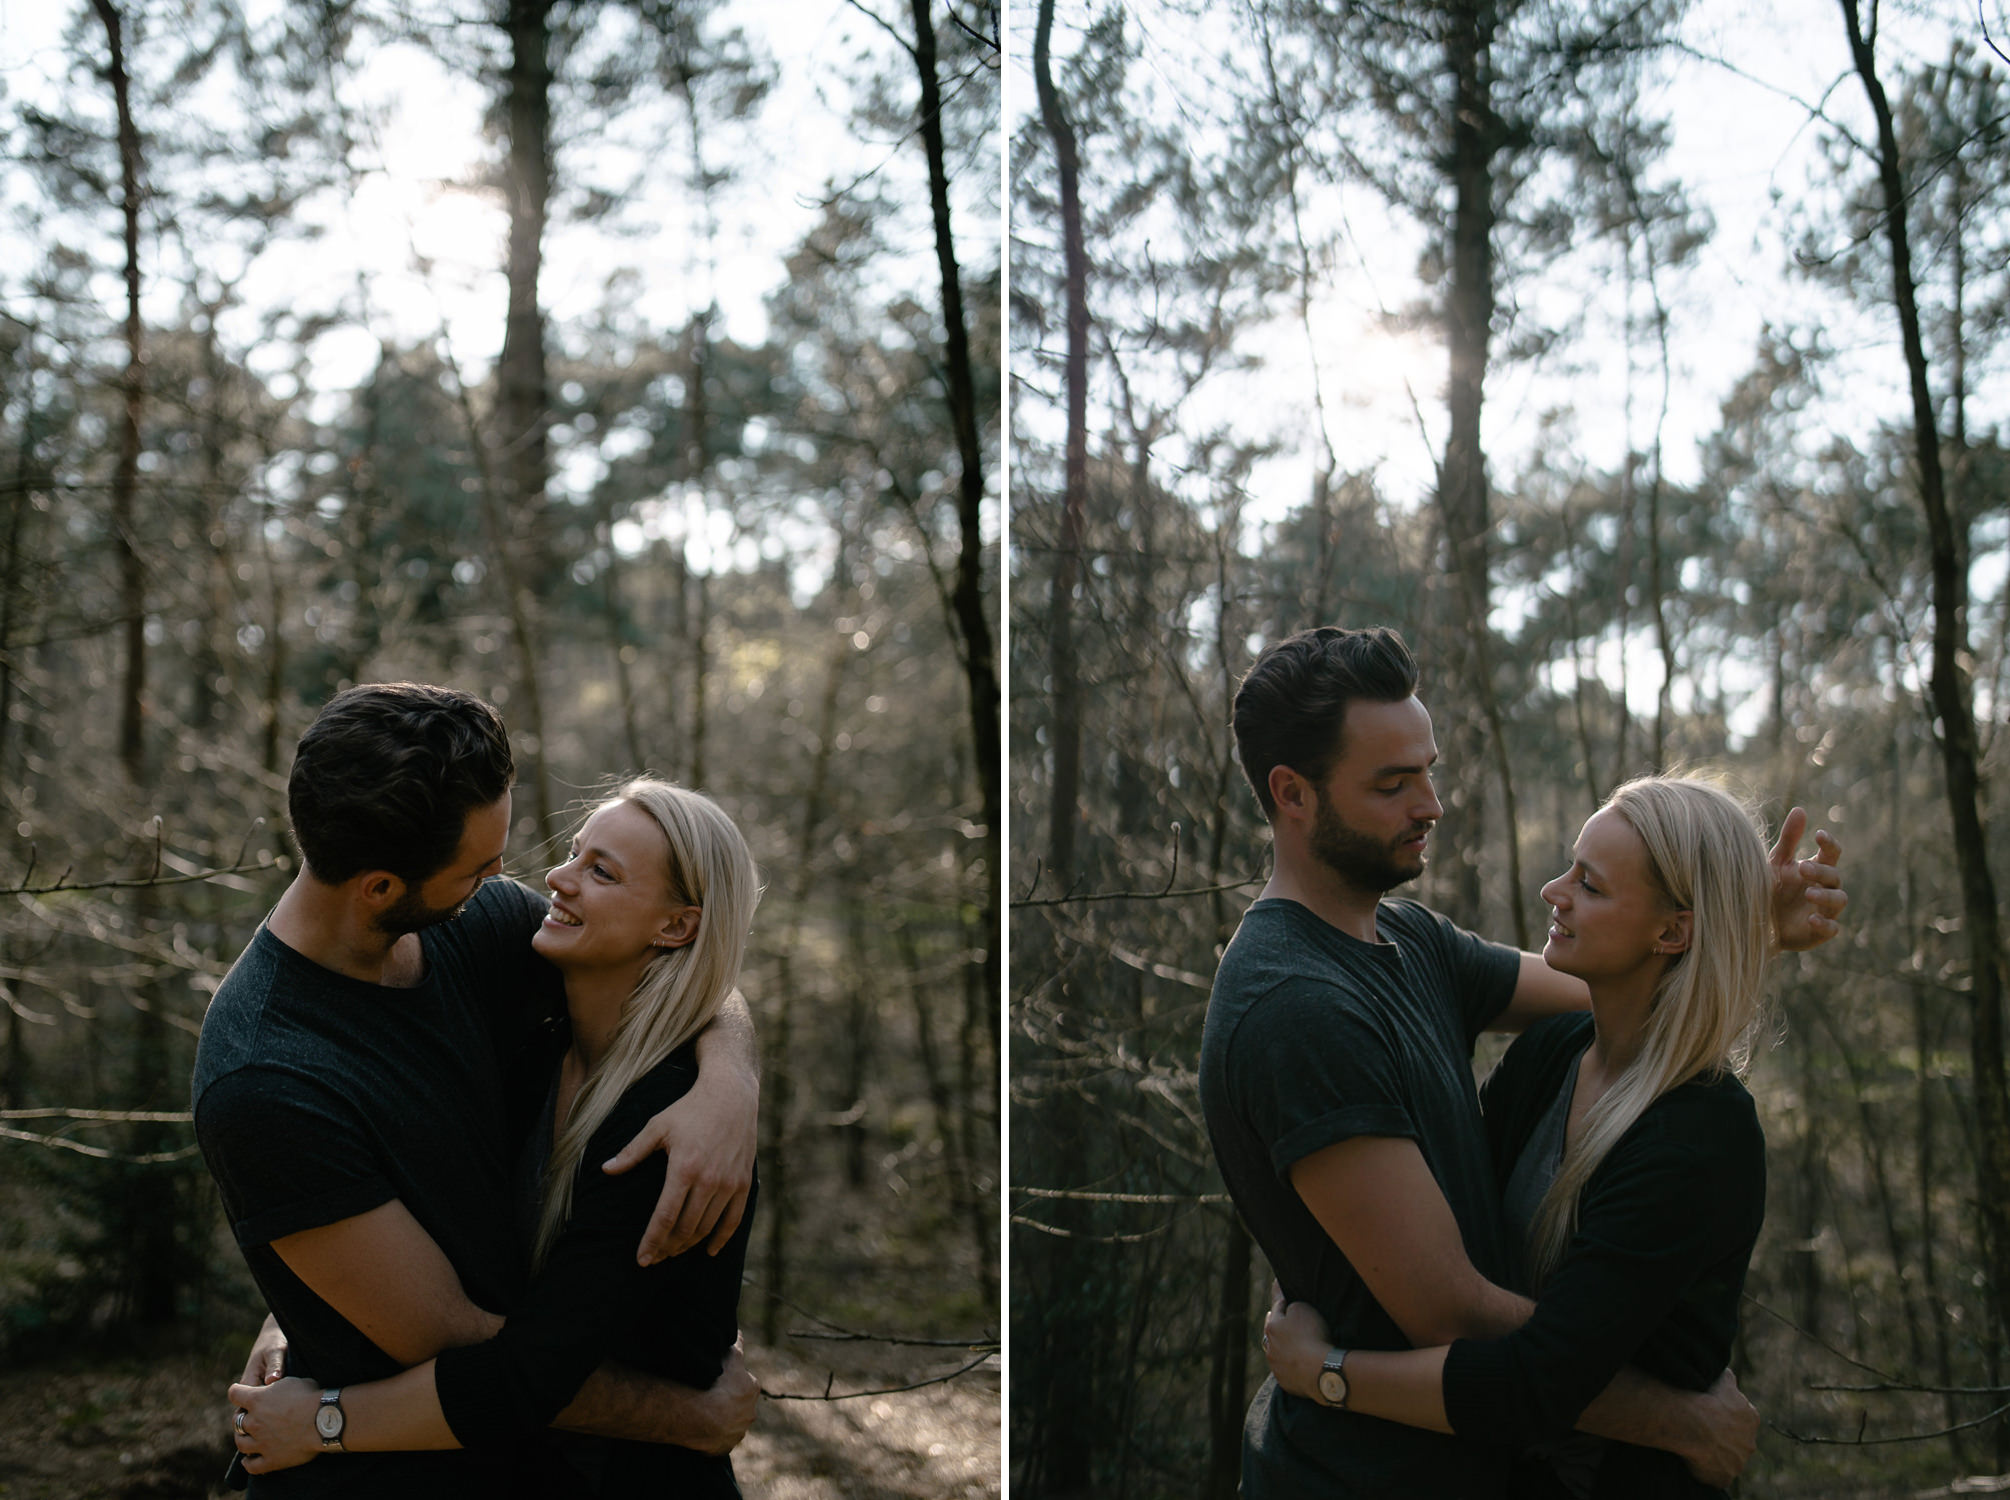 loveshoot in the forest at soesterduinen by mark hadden bruidsfotograaf amsterdam